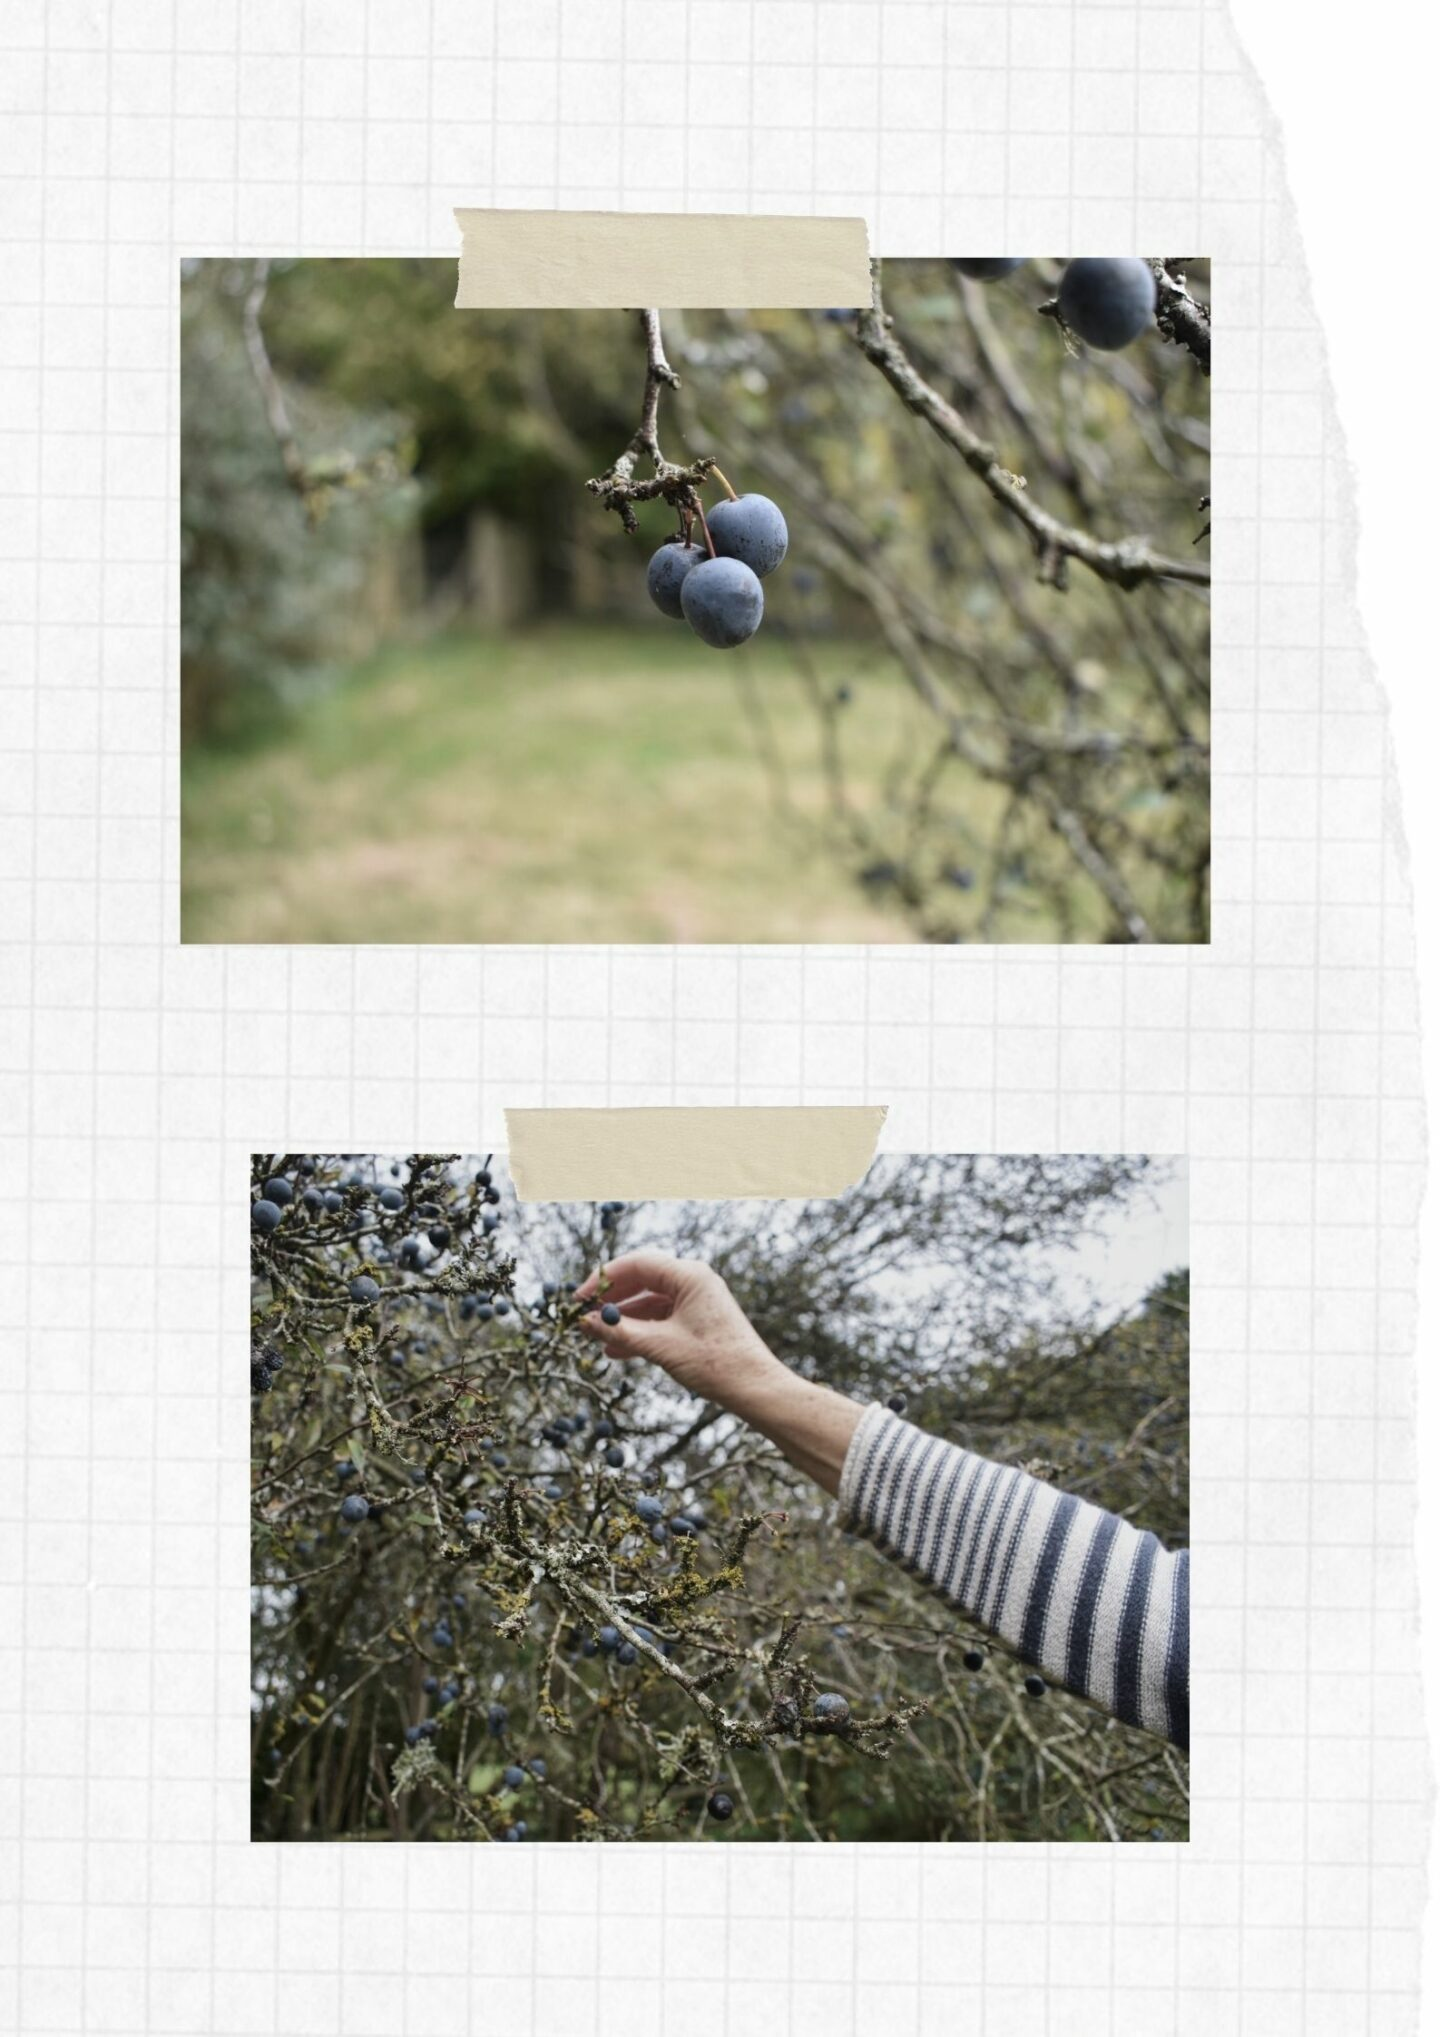 Harvesting sloes